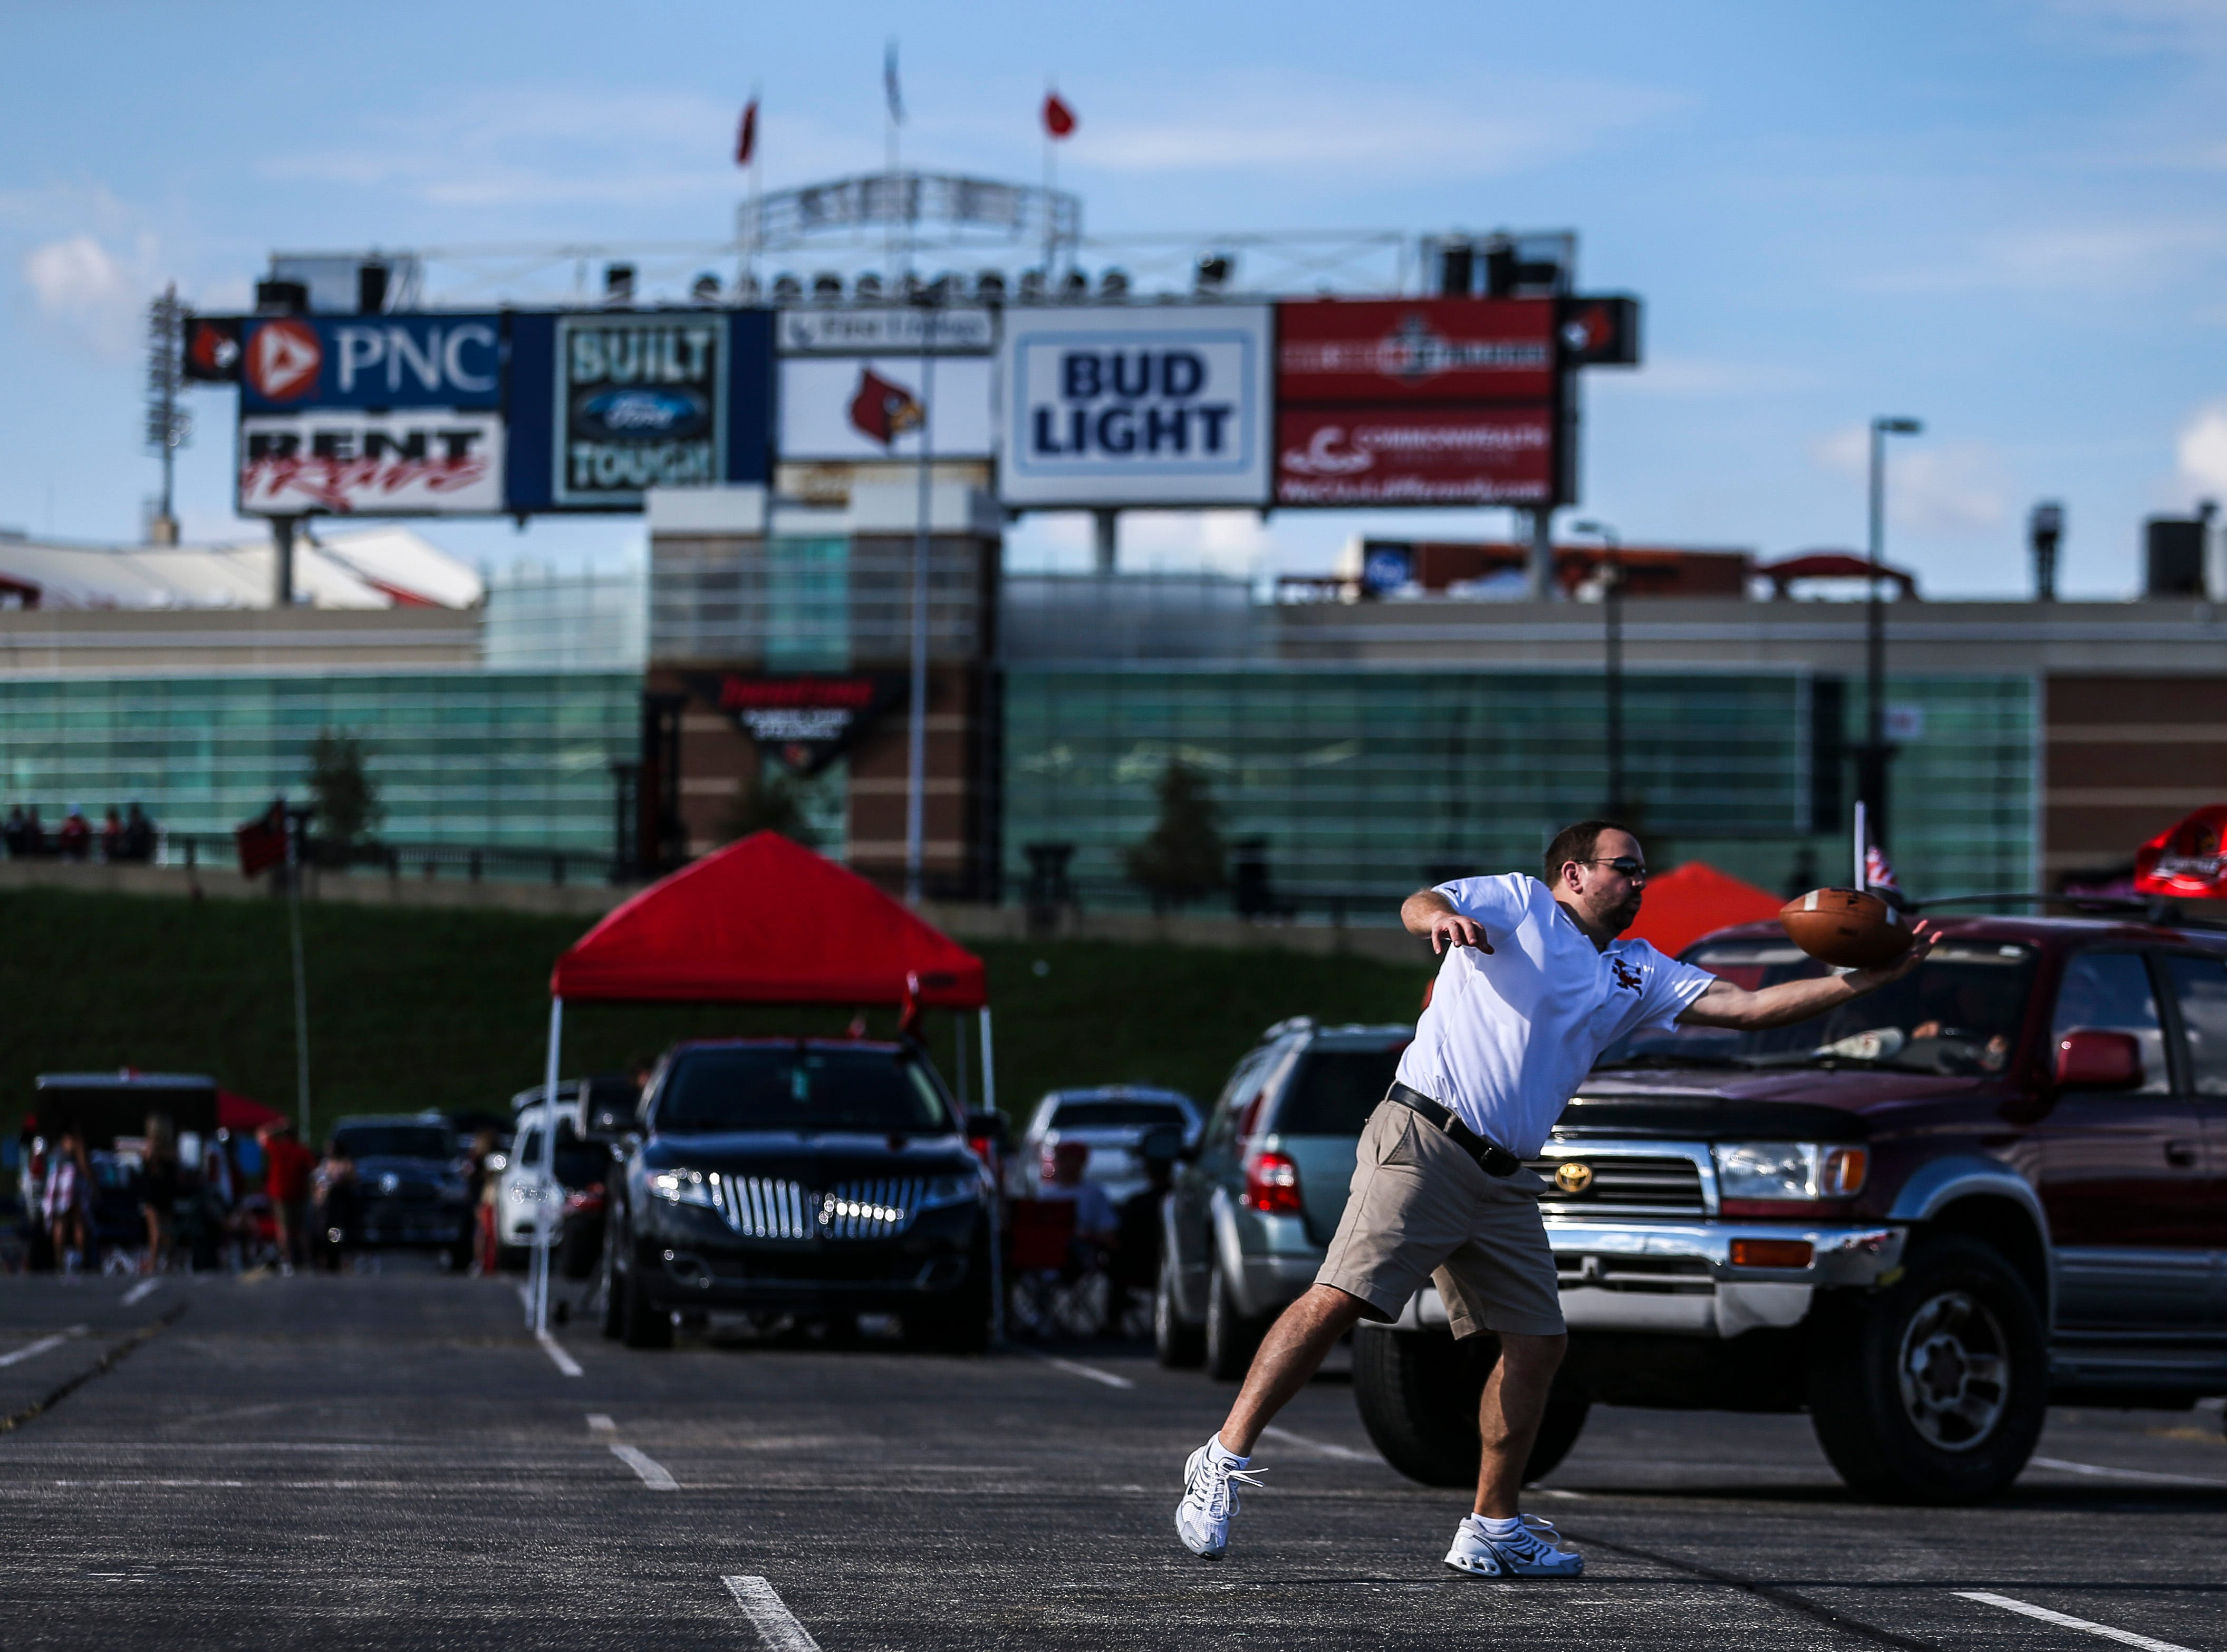 A Louisville fan tries to make a catch while throwing the ball around in a parking lot before the Cardinals' game against Western Kentucky Saturday, Sept. 15, 2018.